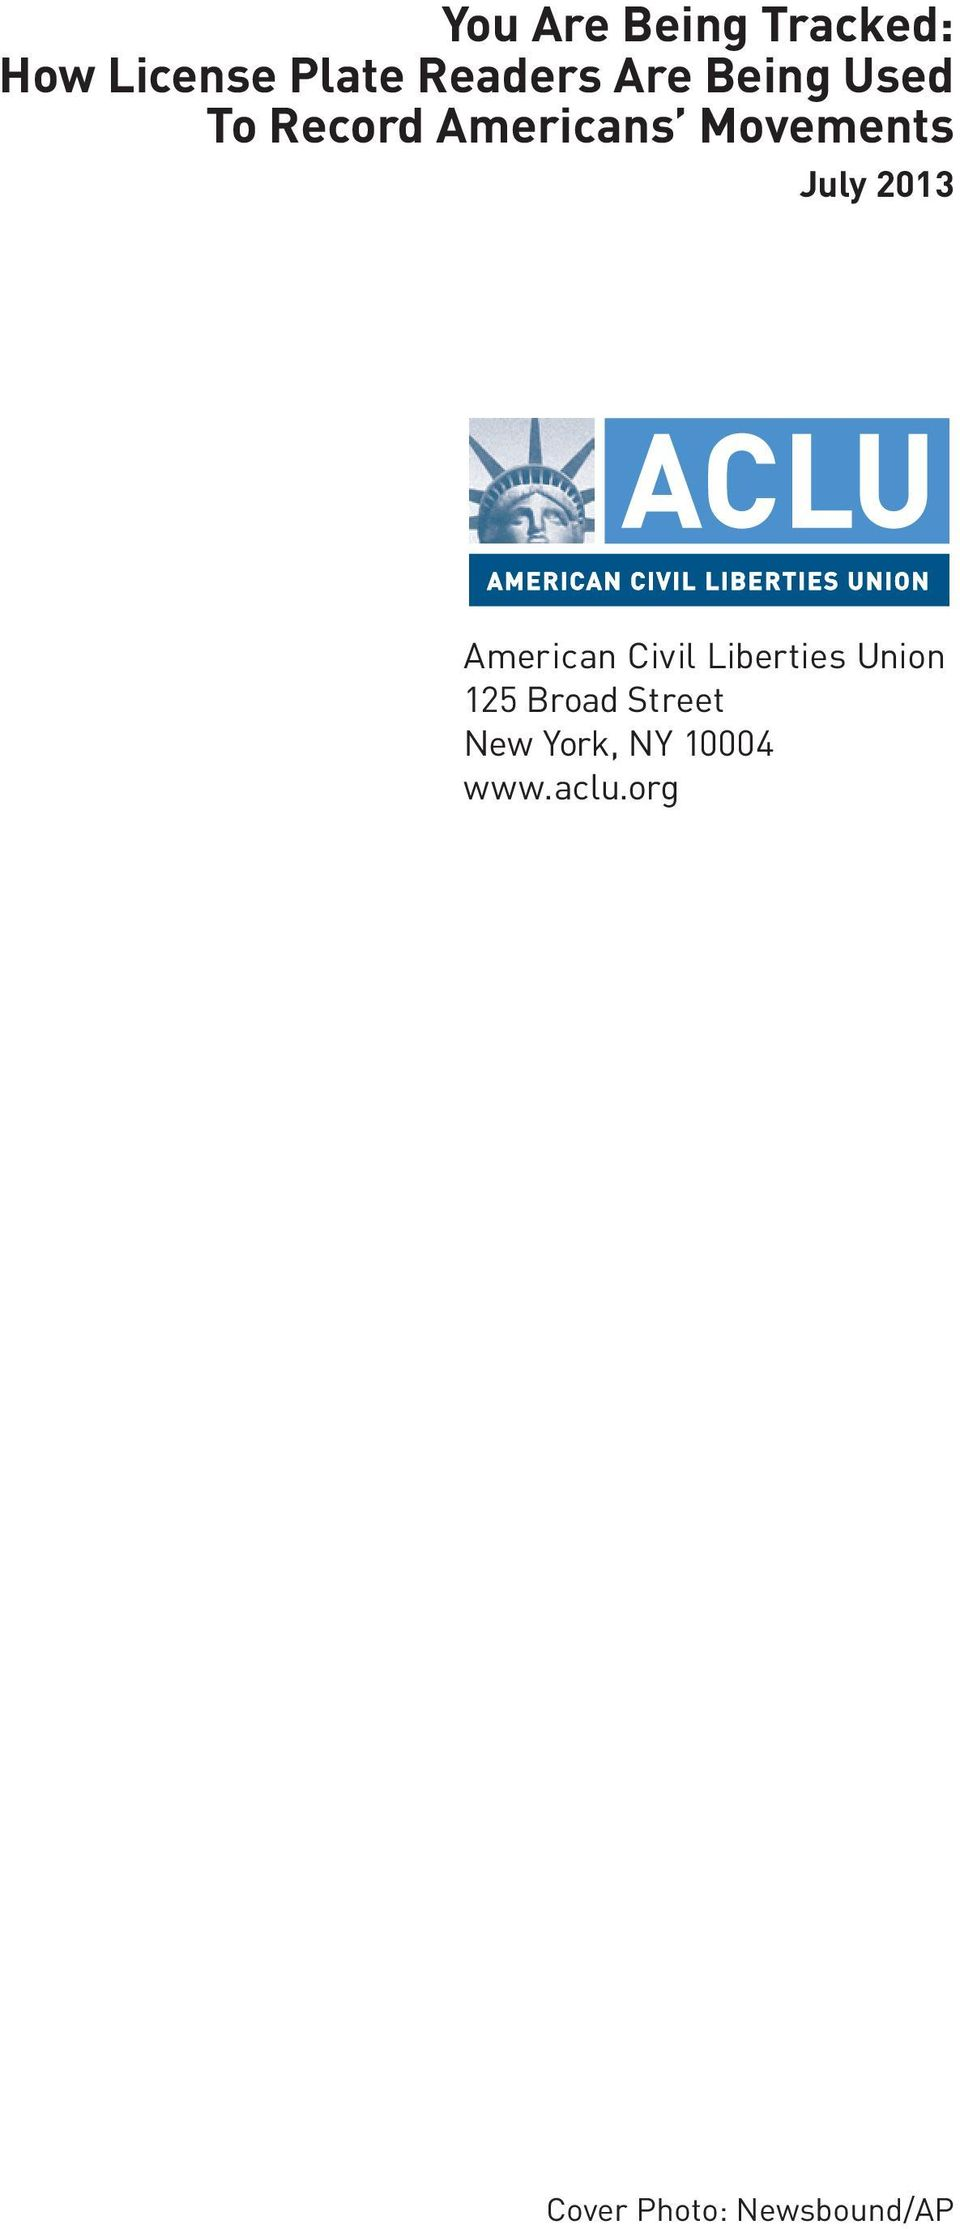 American Civil Liberties Union 125 Broad Street New